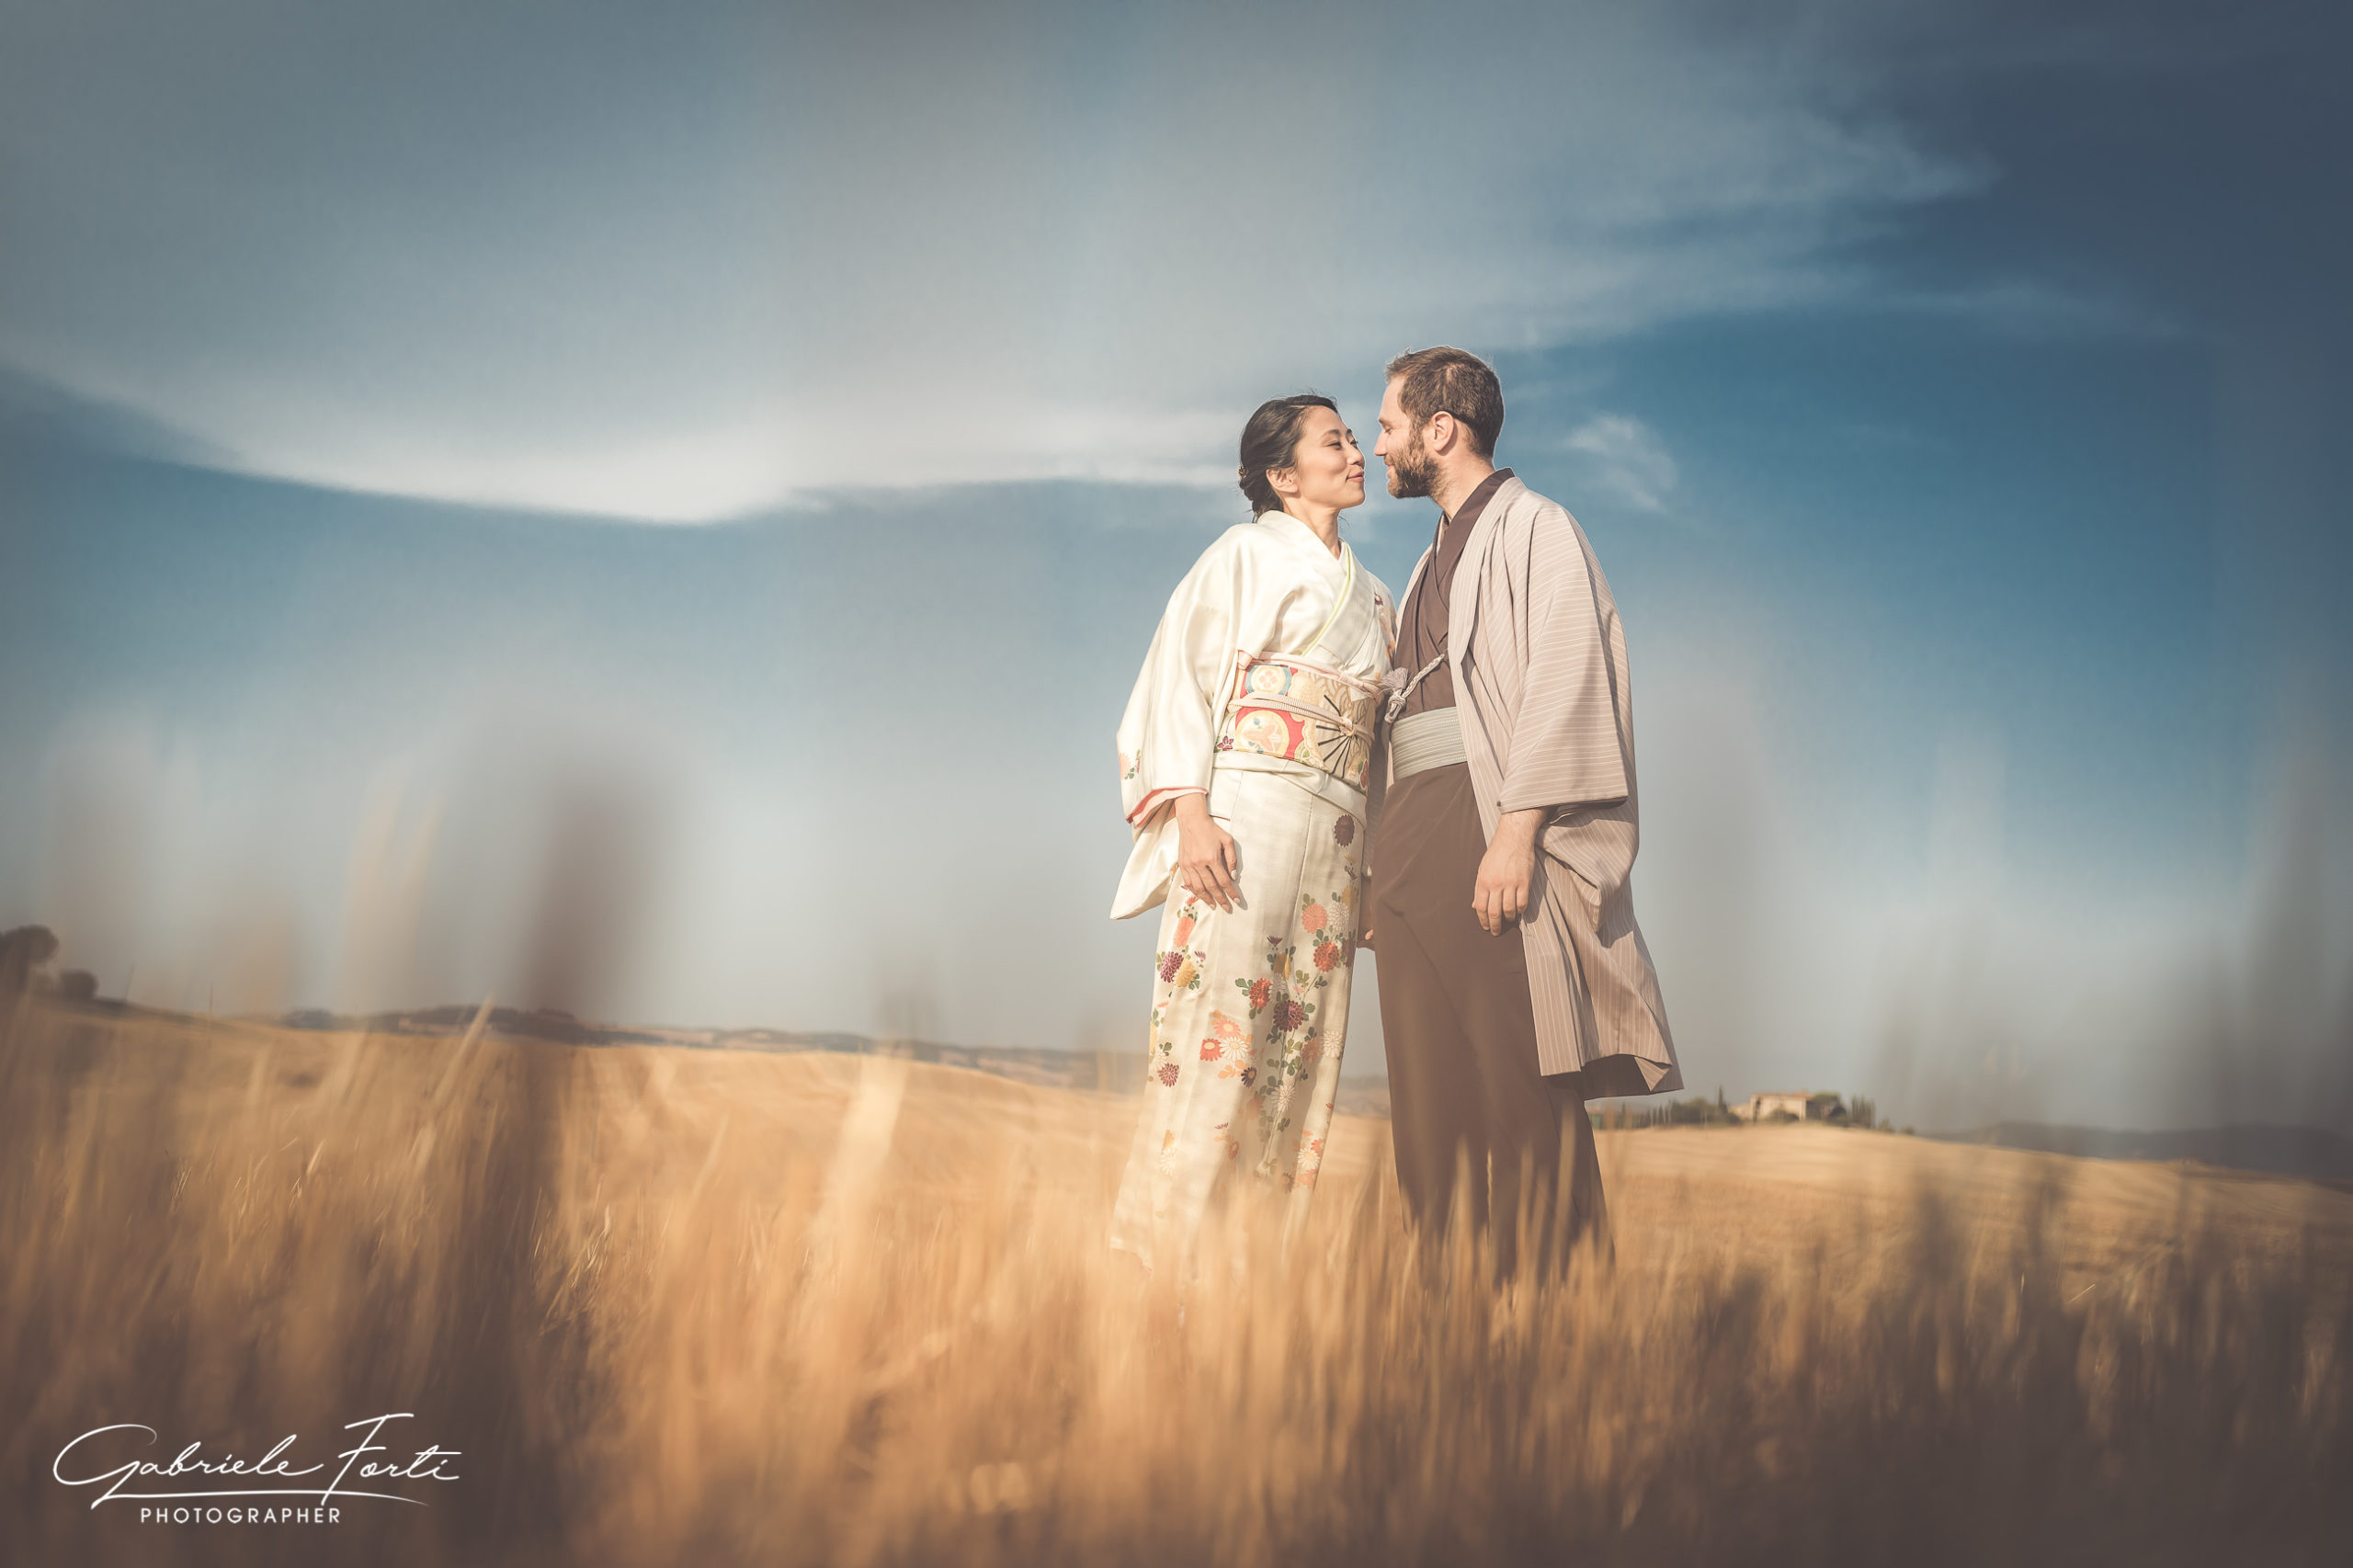 wedding-japan-tuscany-locanda-in-tuscany-photographer-siena-foto-forti-gabriele-1